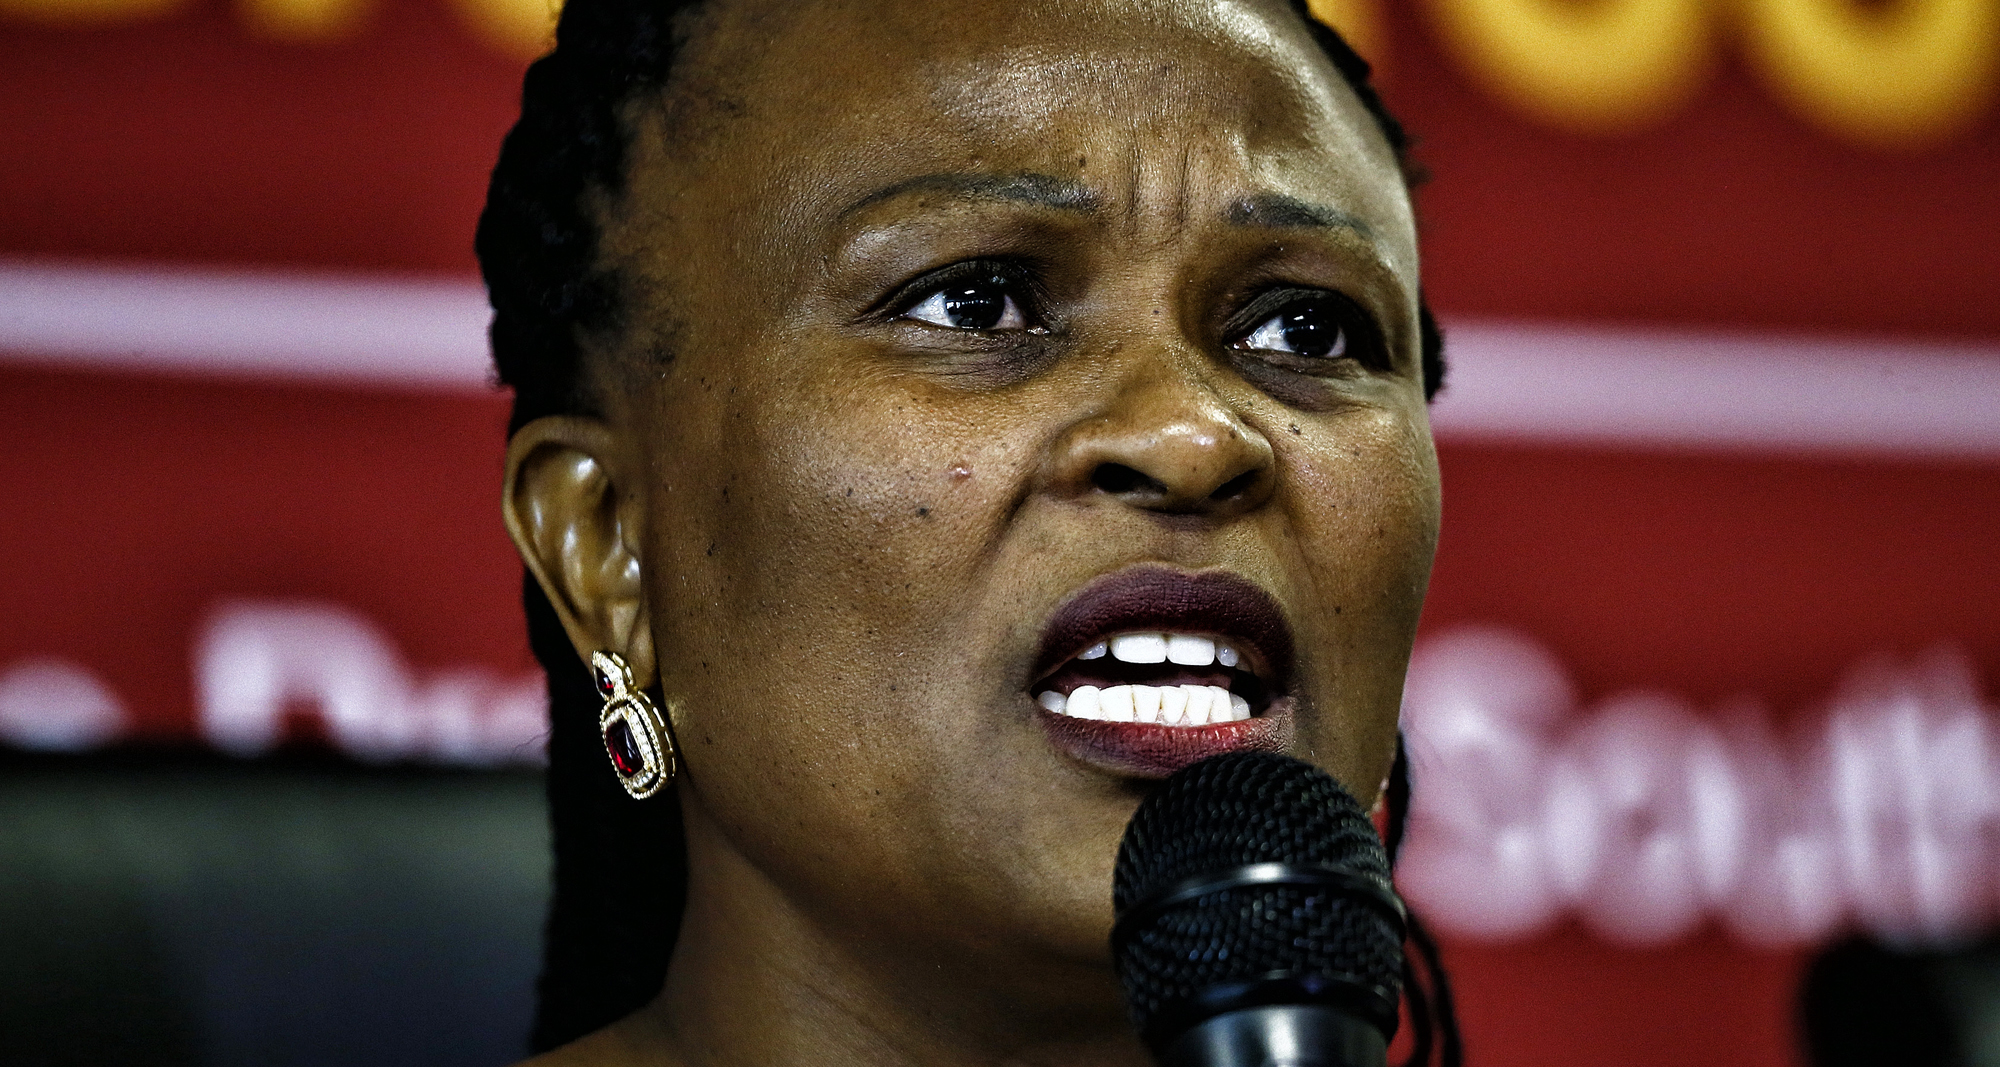 Public Protector provisionally finds 'serious irregular